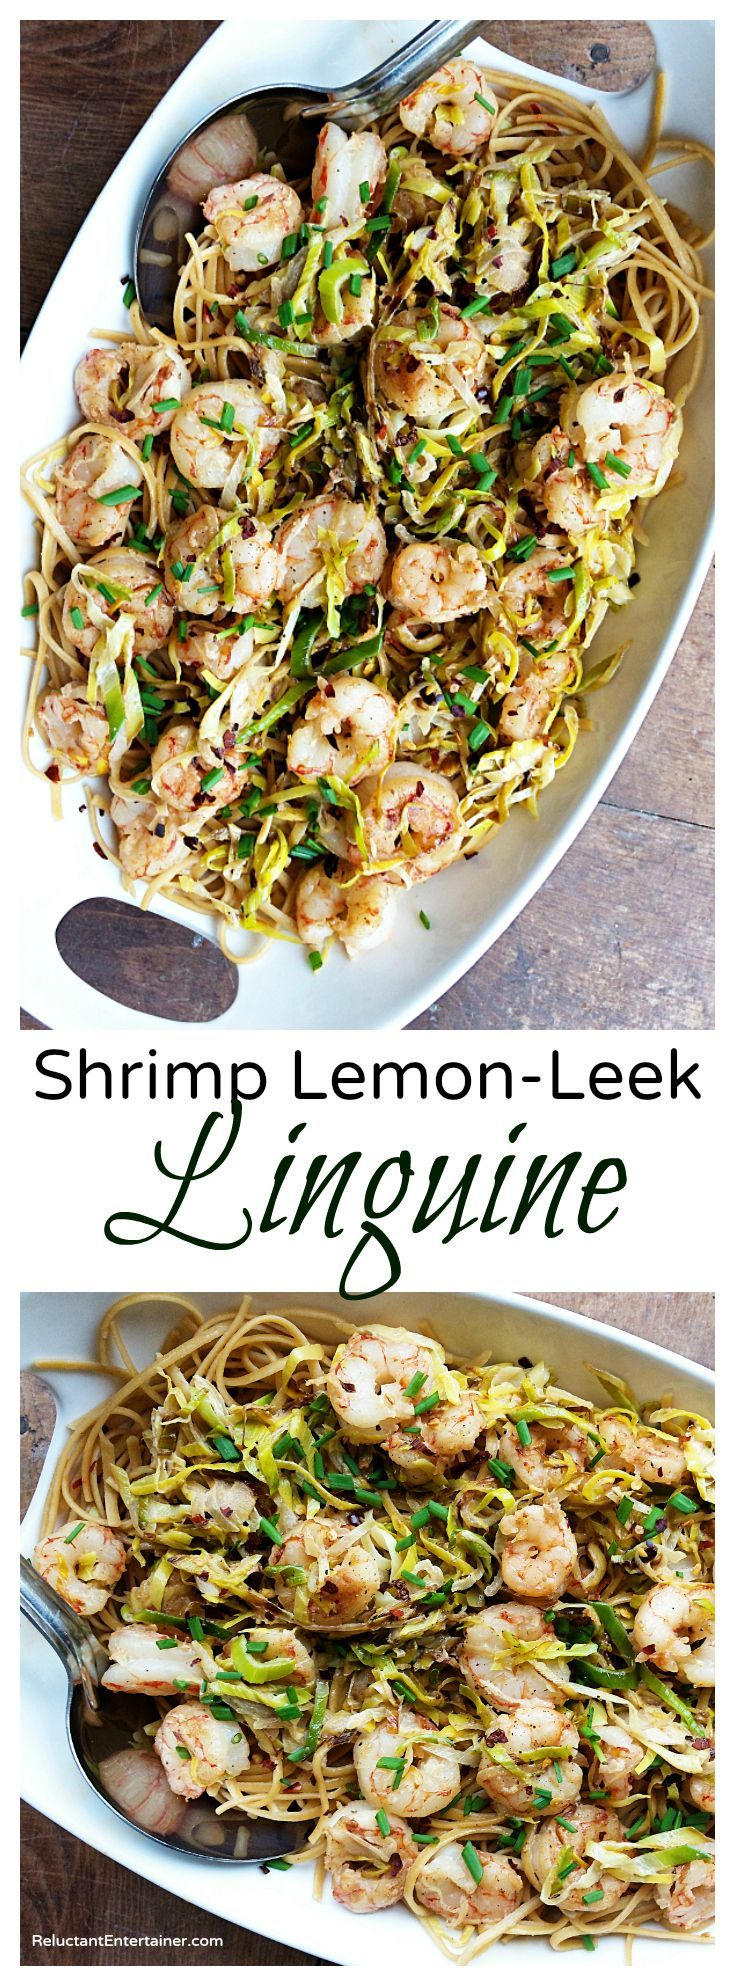 Shrimp Lemon-Leek Linguine Recipe